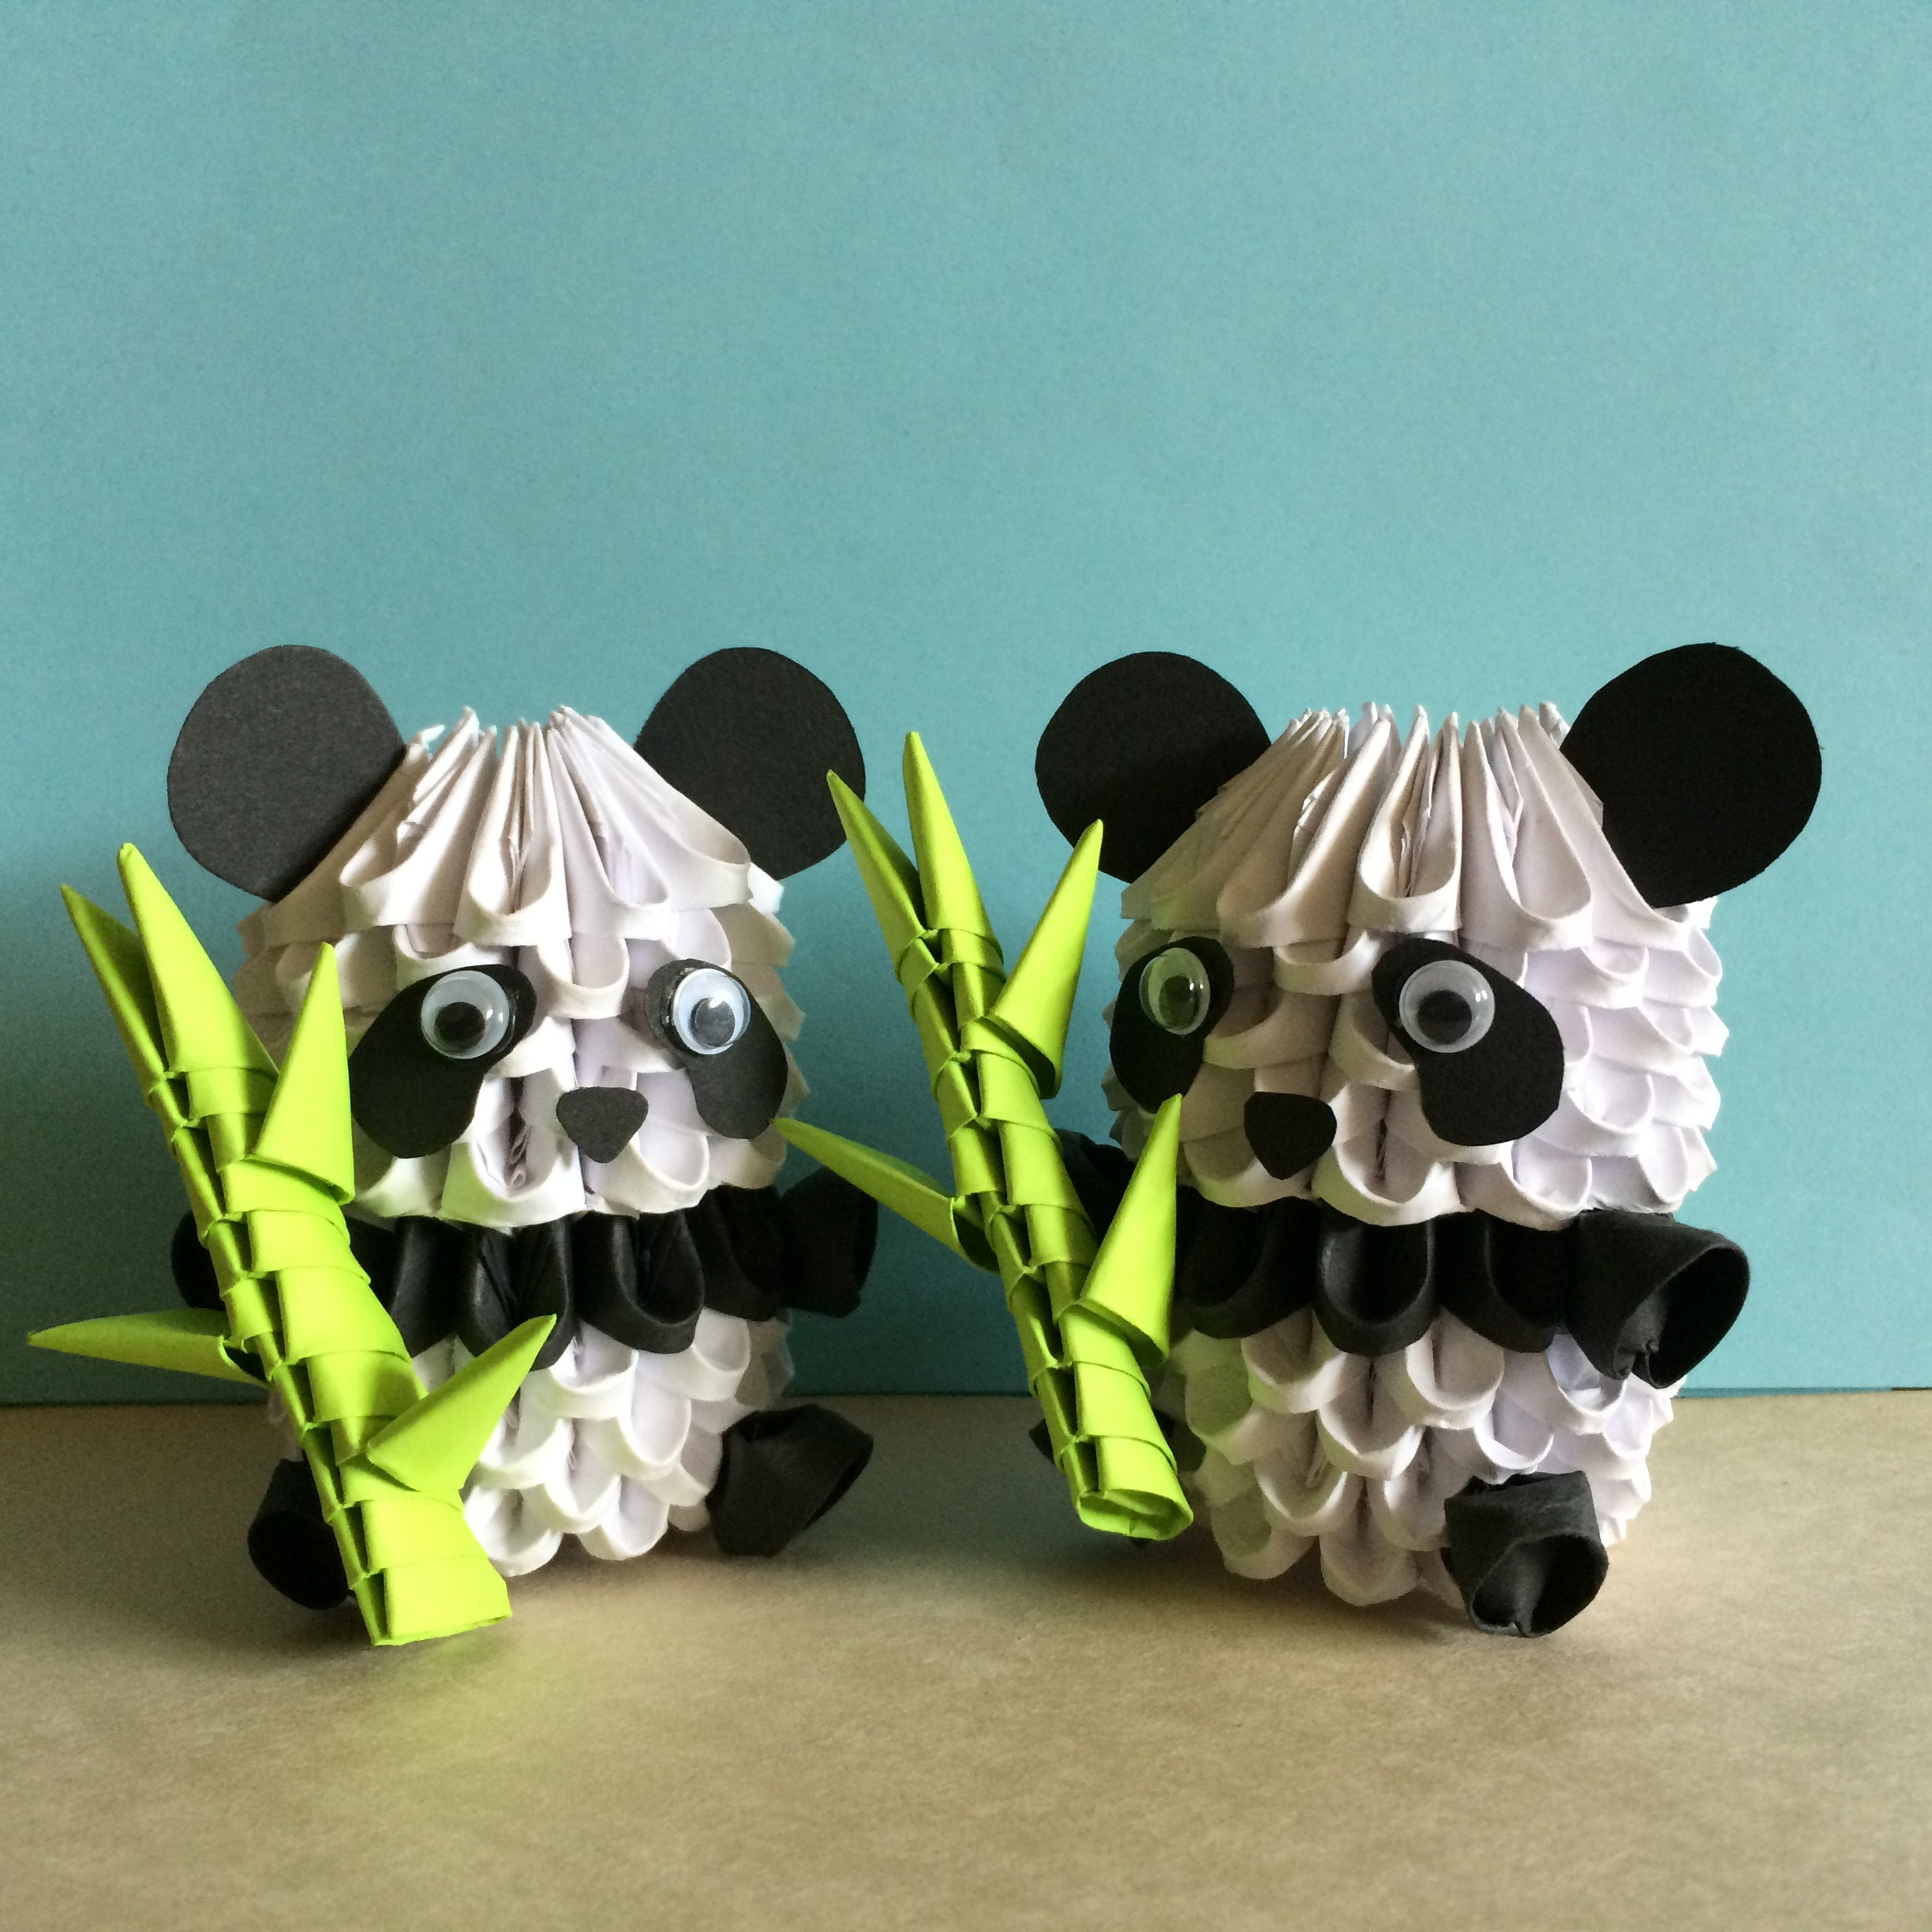 Adorable 3d origami panda with bamboo shoot or valentine 3d request a custom order and have something made just for you jeuxipadfo Choice Image